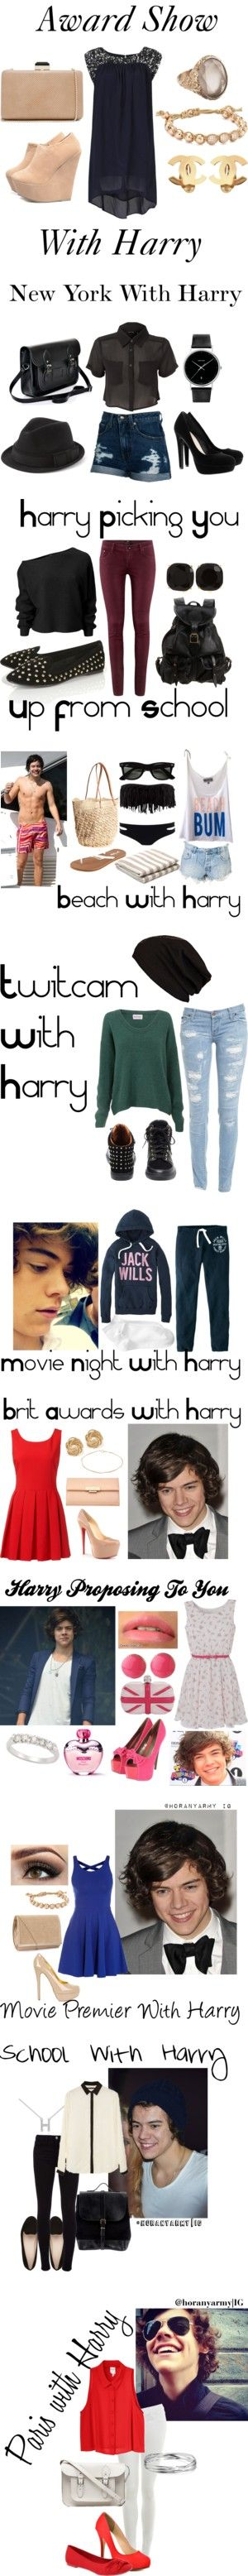 """Directioner Outfits - Harry Styles"" by bananaaaa ❤ liked on Polyvore"